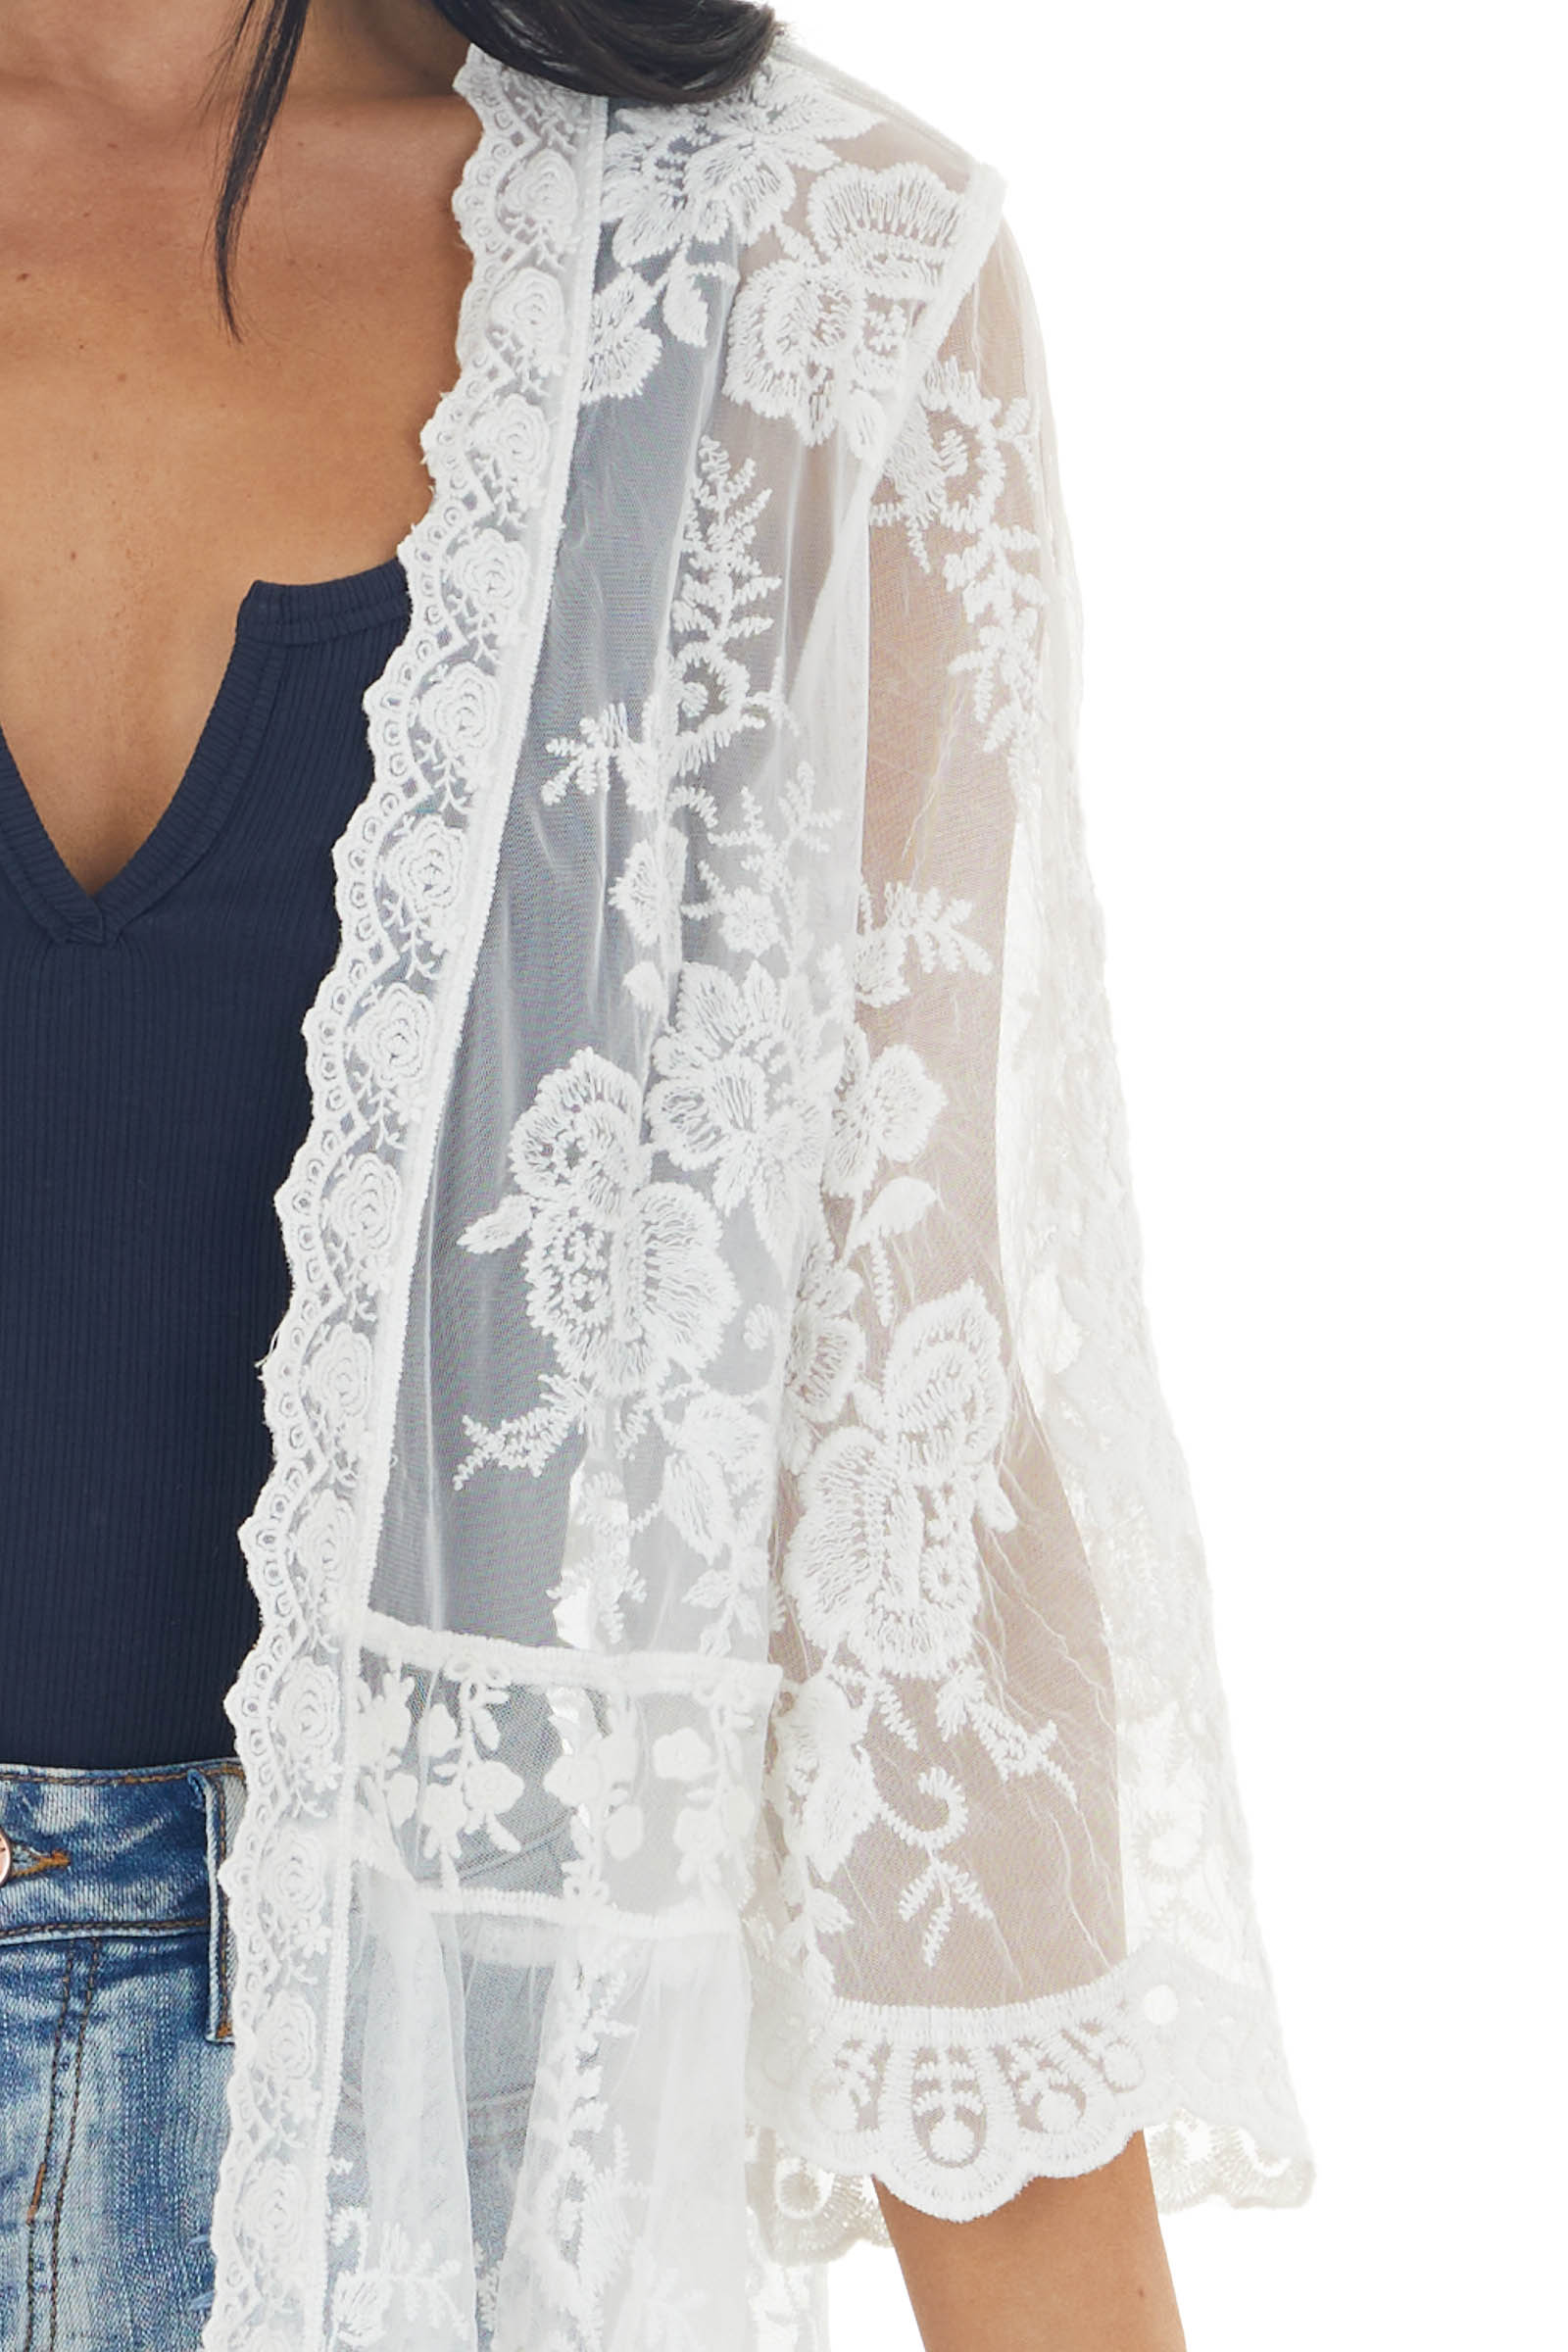 Ivory Crocheted Lace Long Length Kimono with Short Sleeves